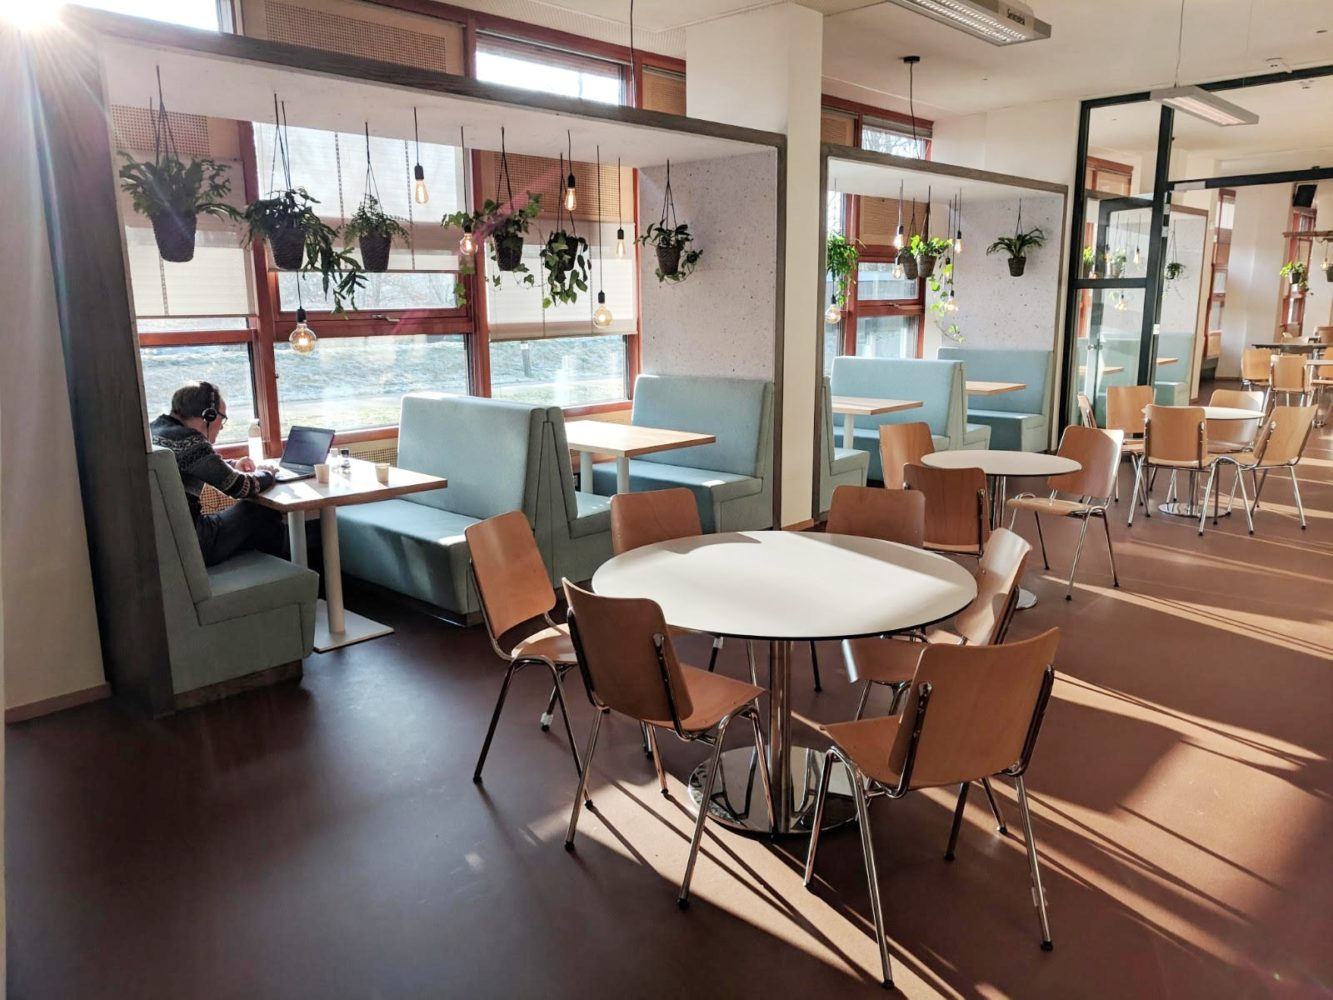 circulaire inrichting kantine - project WNF